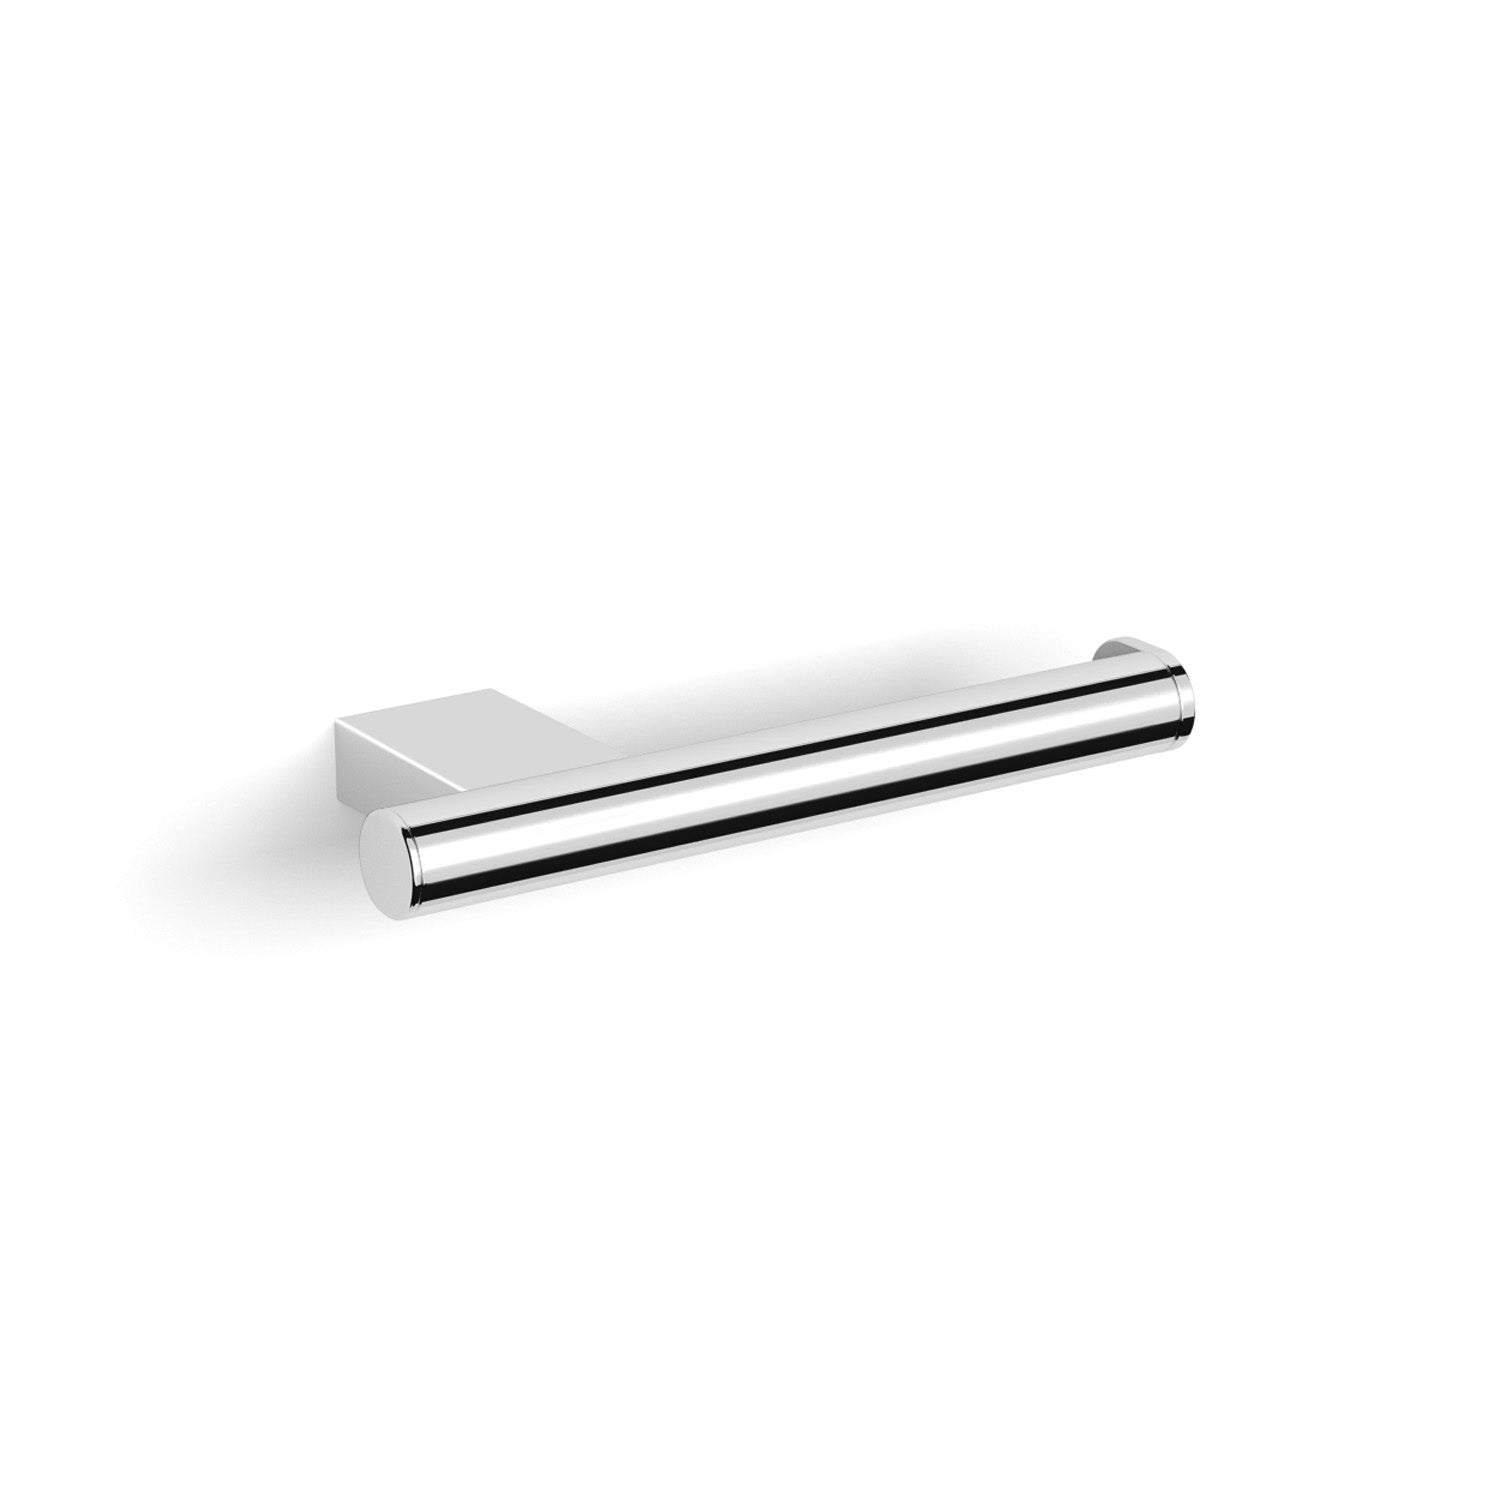 Fixed Modale Toilet Roll Holder with a chrome finish and no cover on a white background